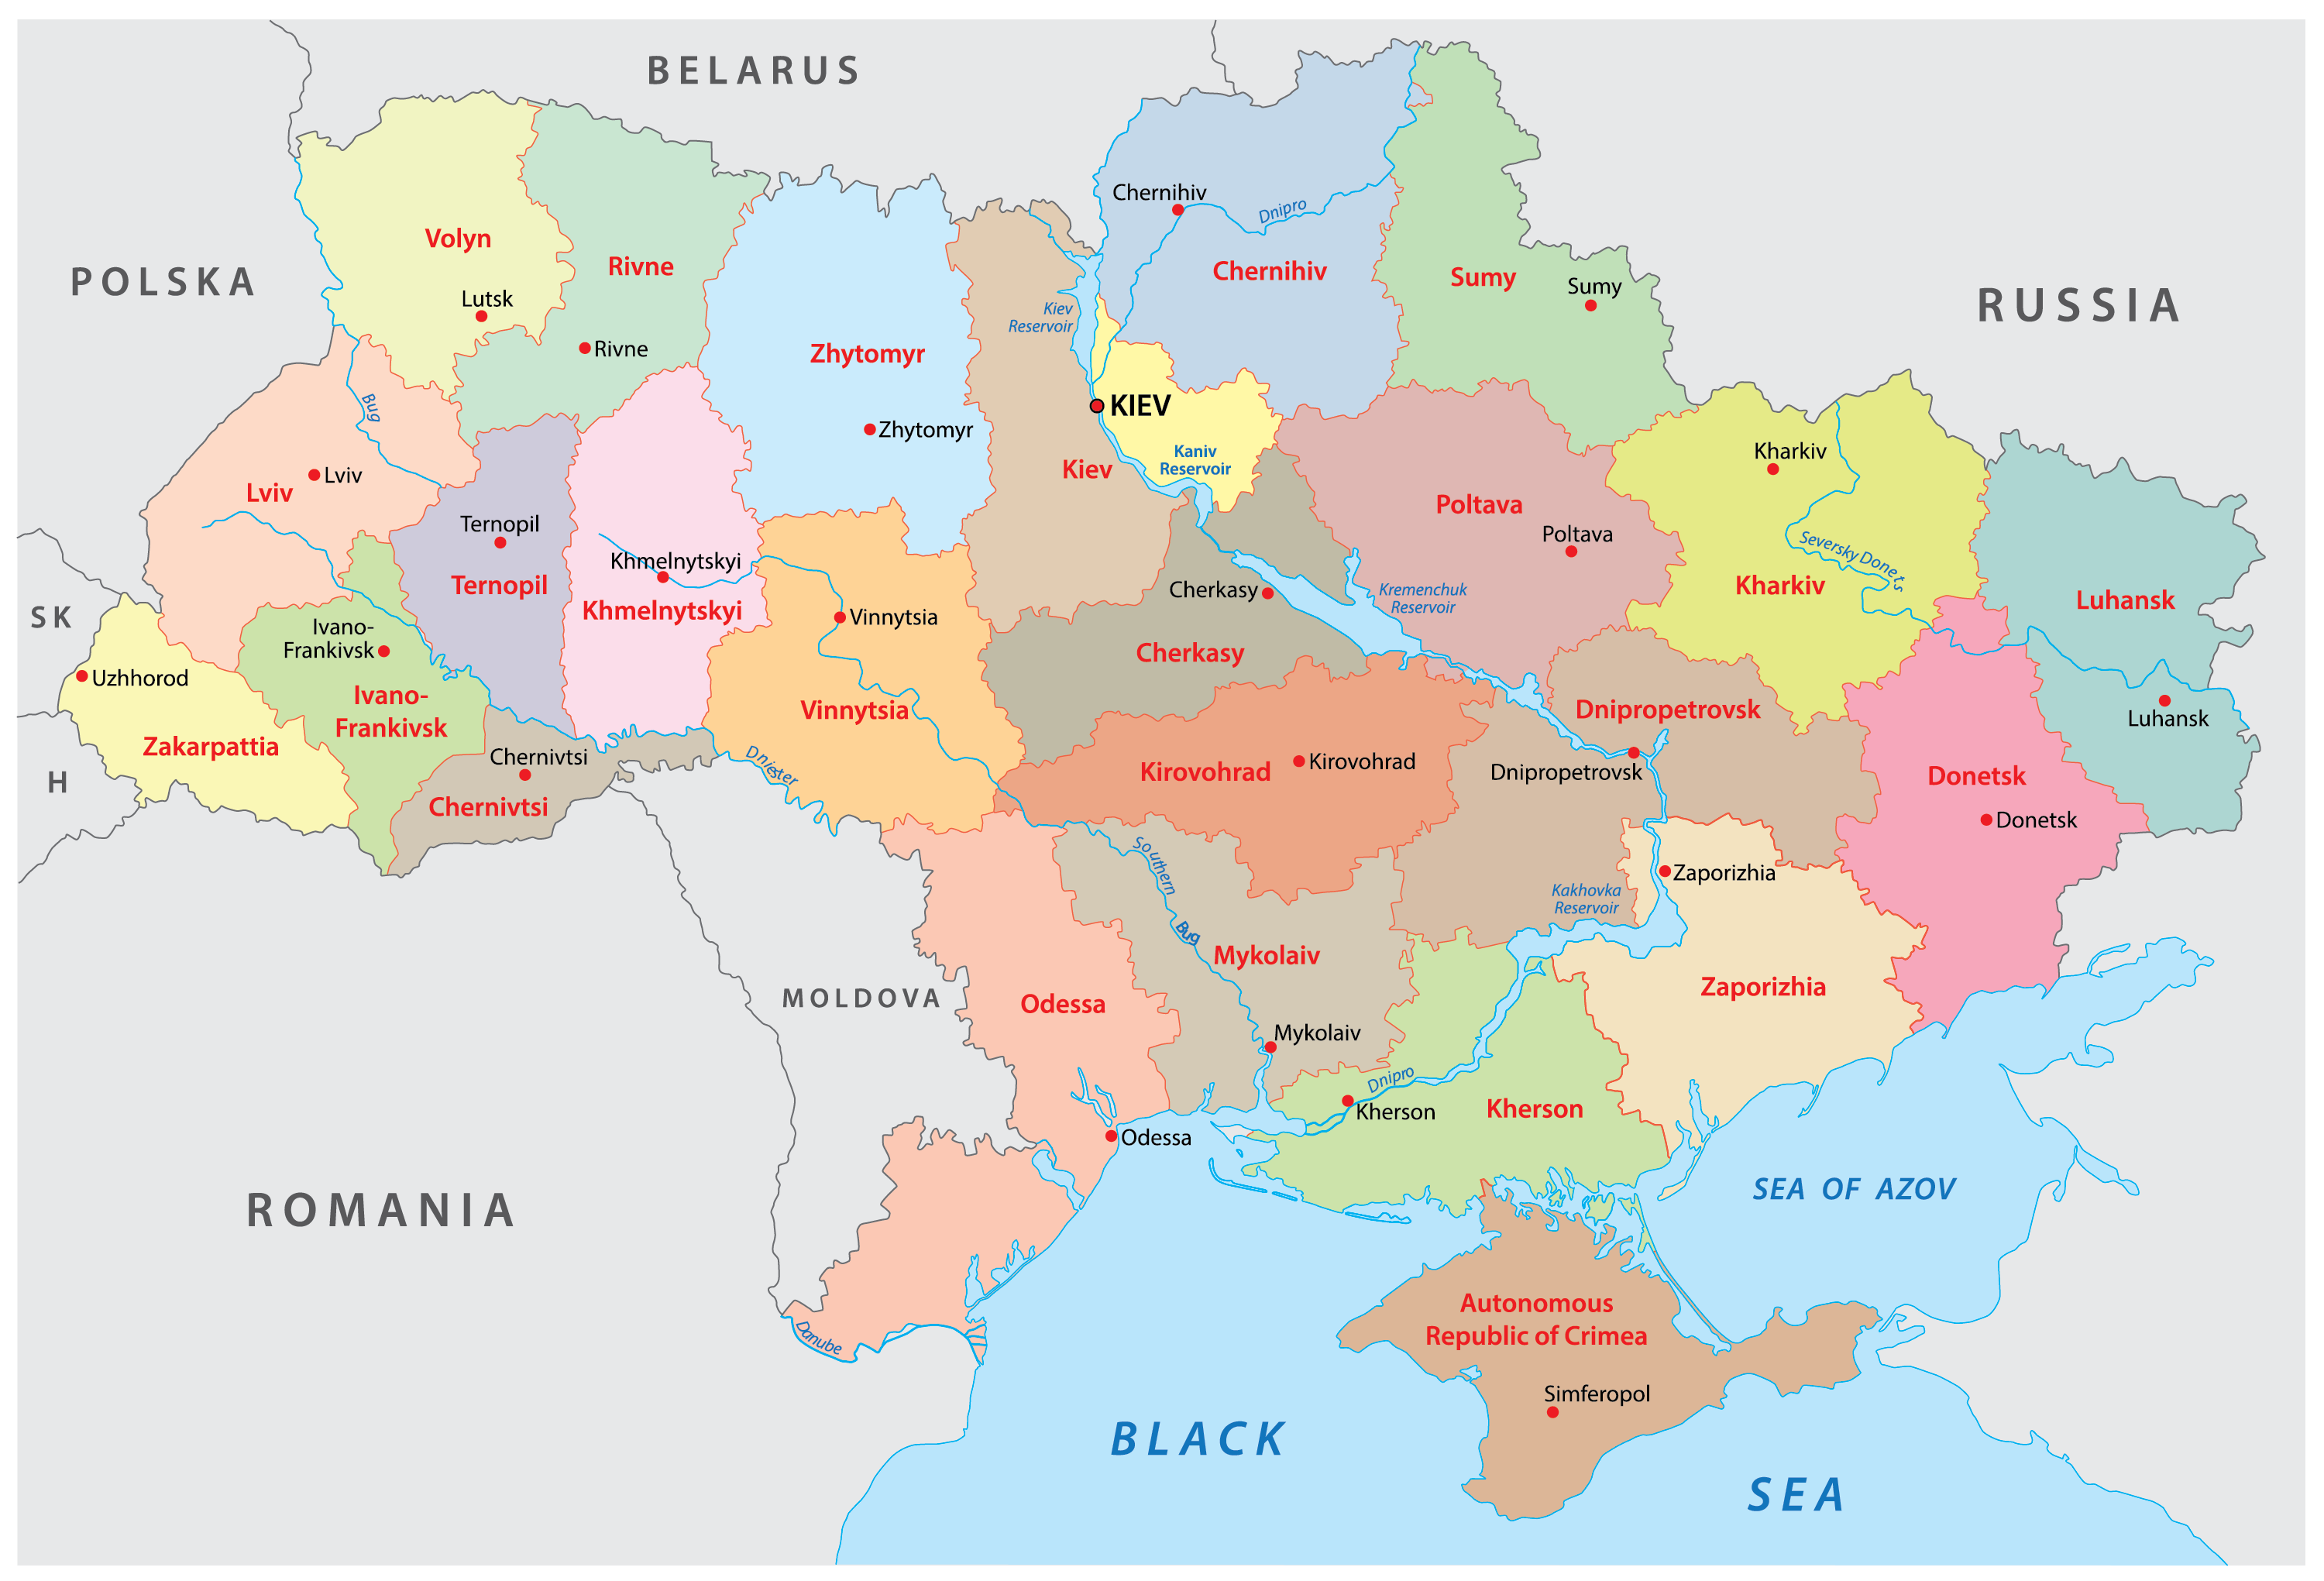 Political Map of Ukraine showing 24 provinces and the capital city of Kiev.